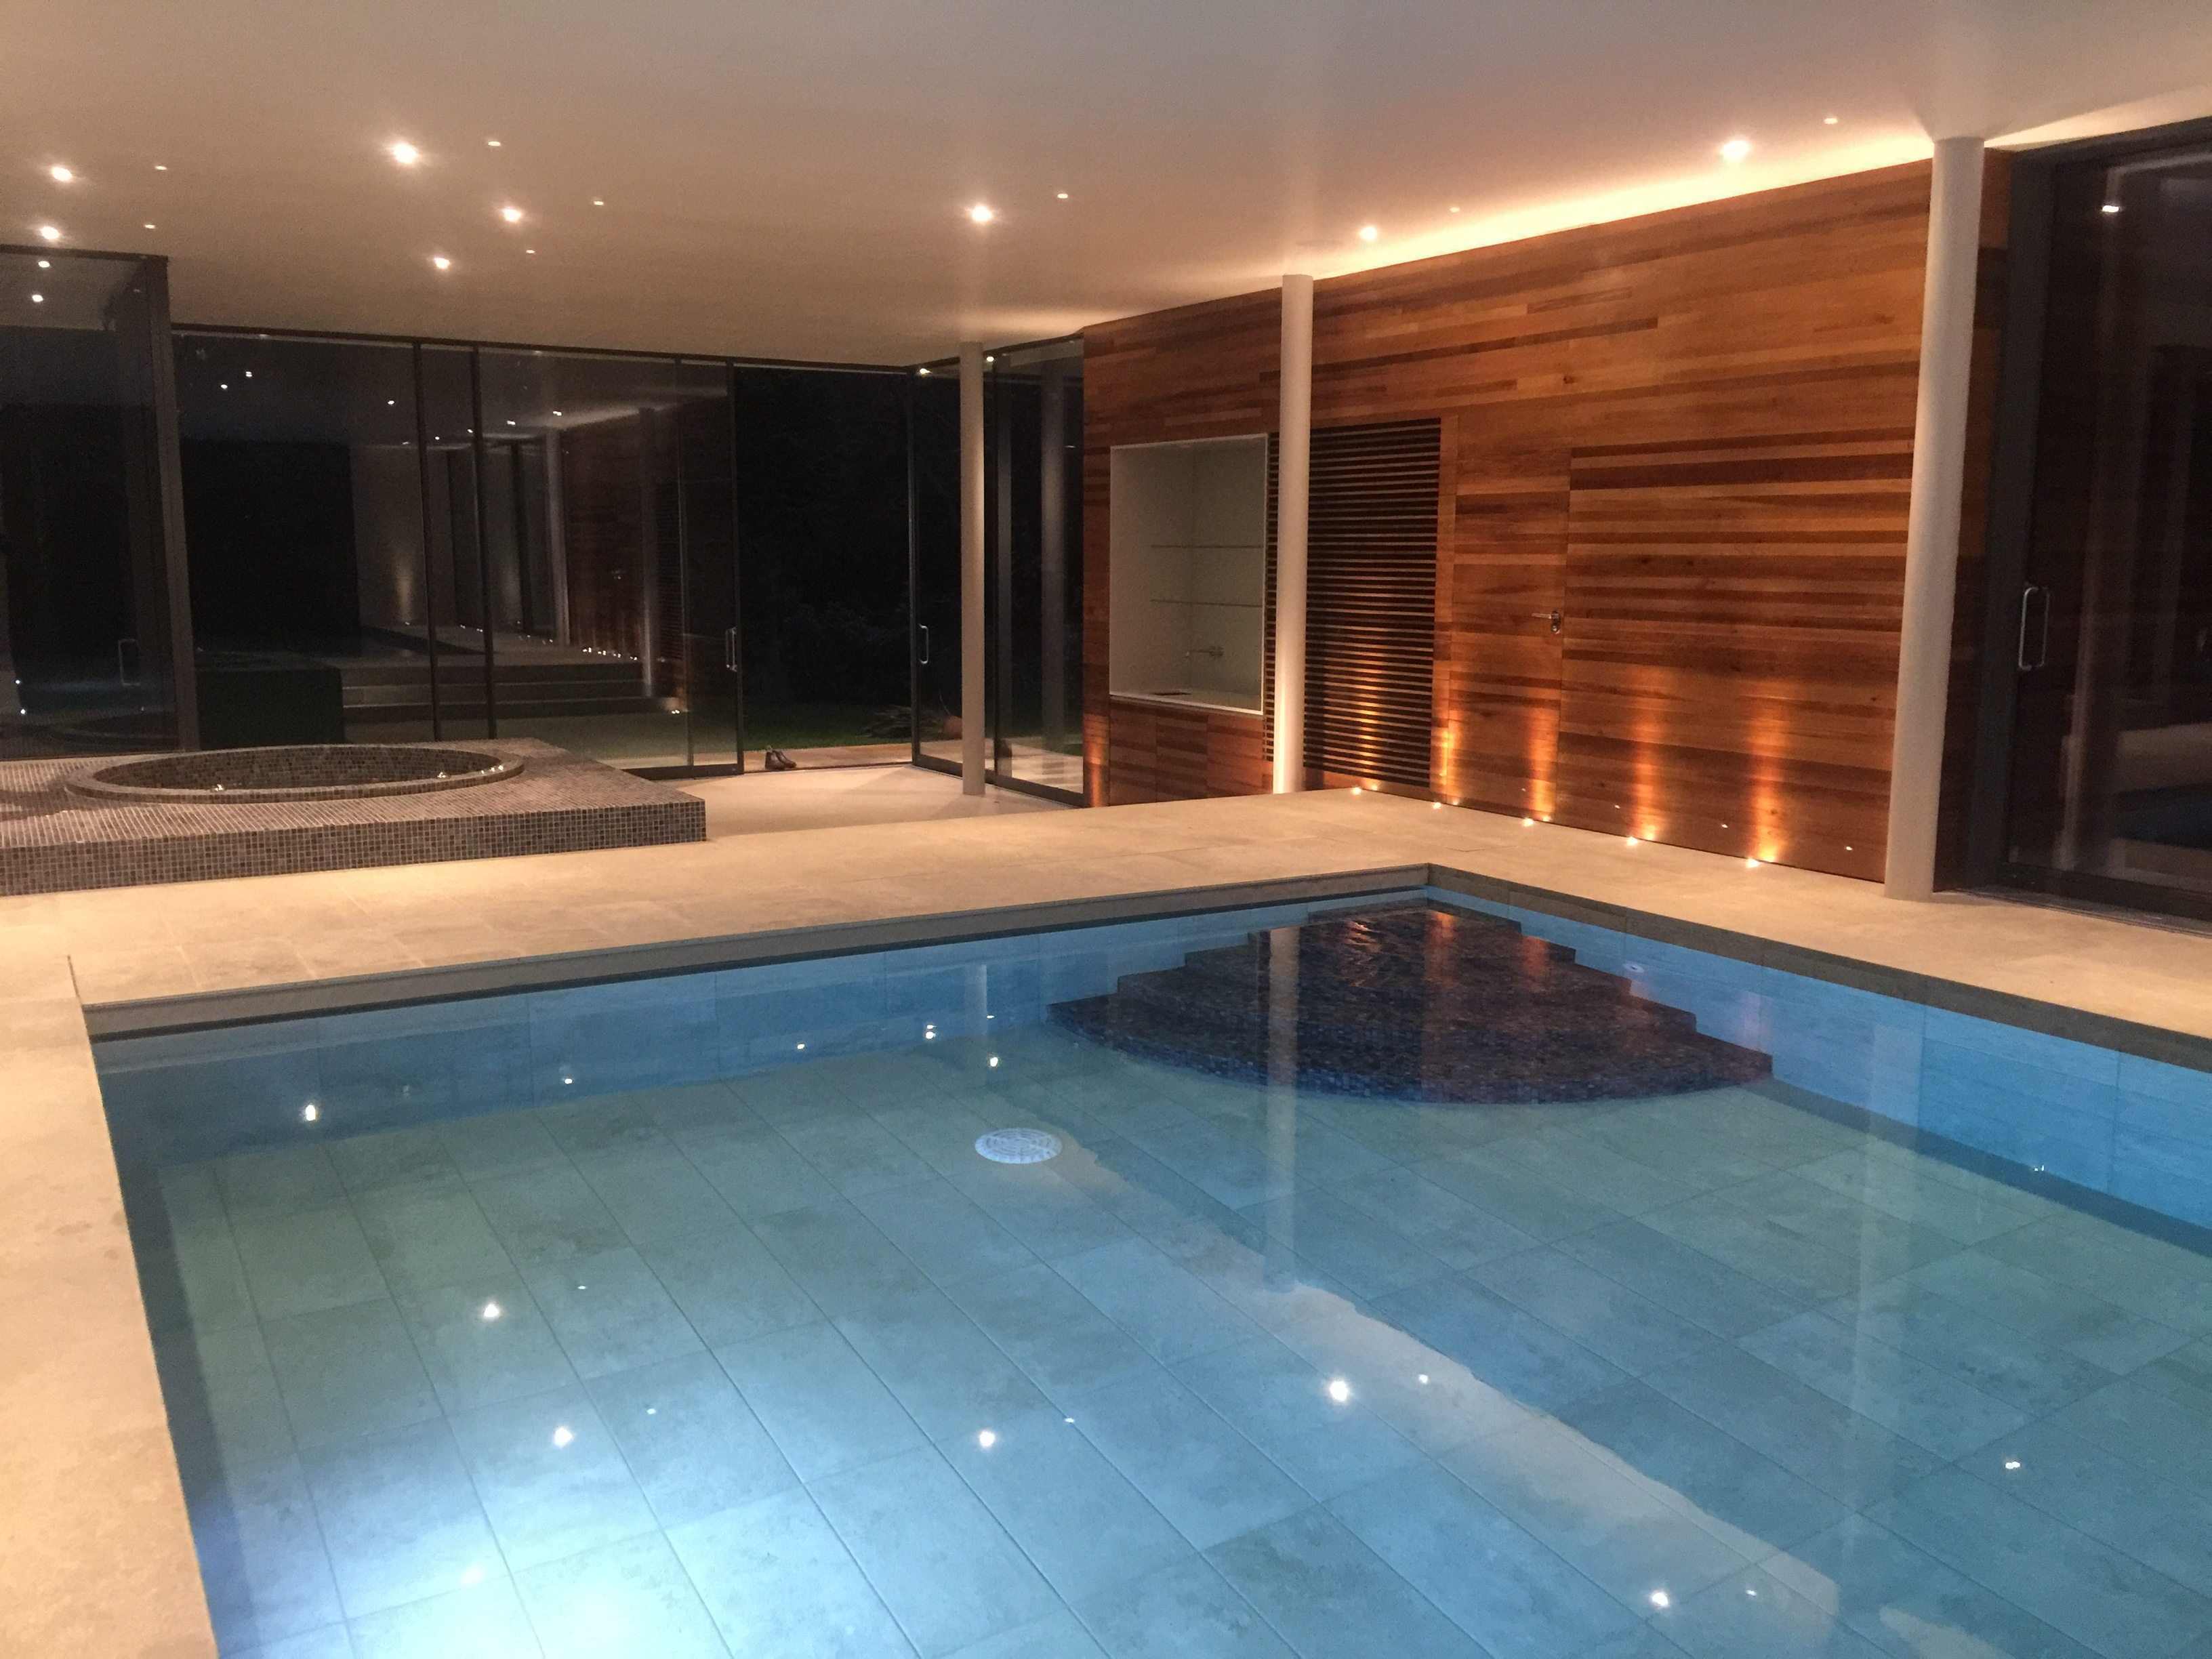 Concrete Pool Construction | Ascot Pools - Swimming Pool ...